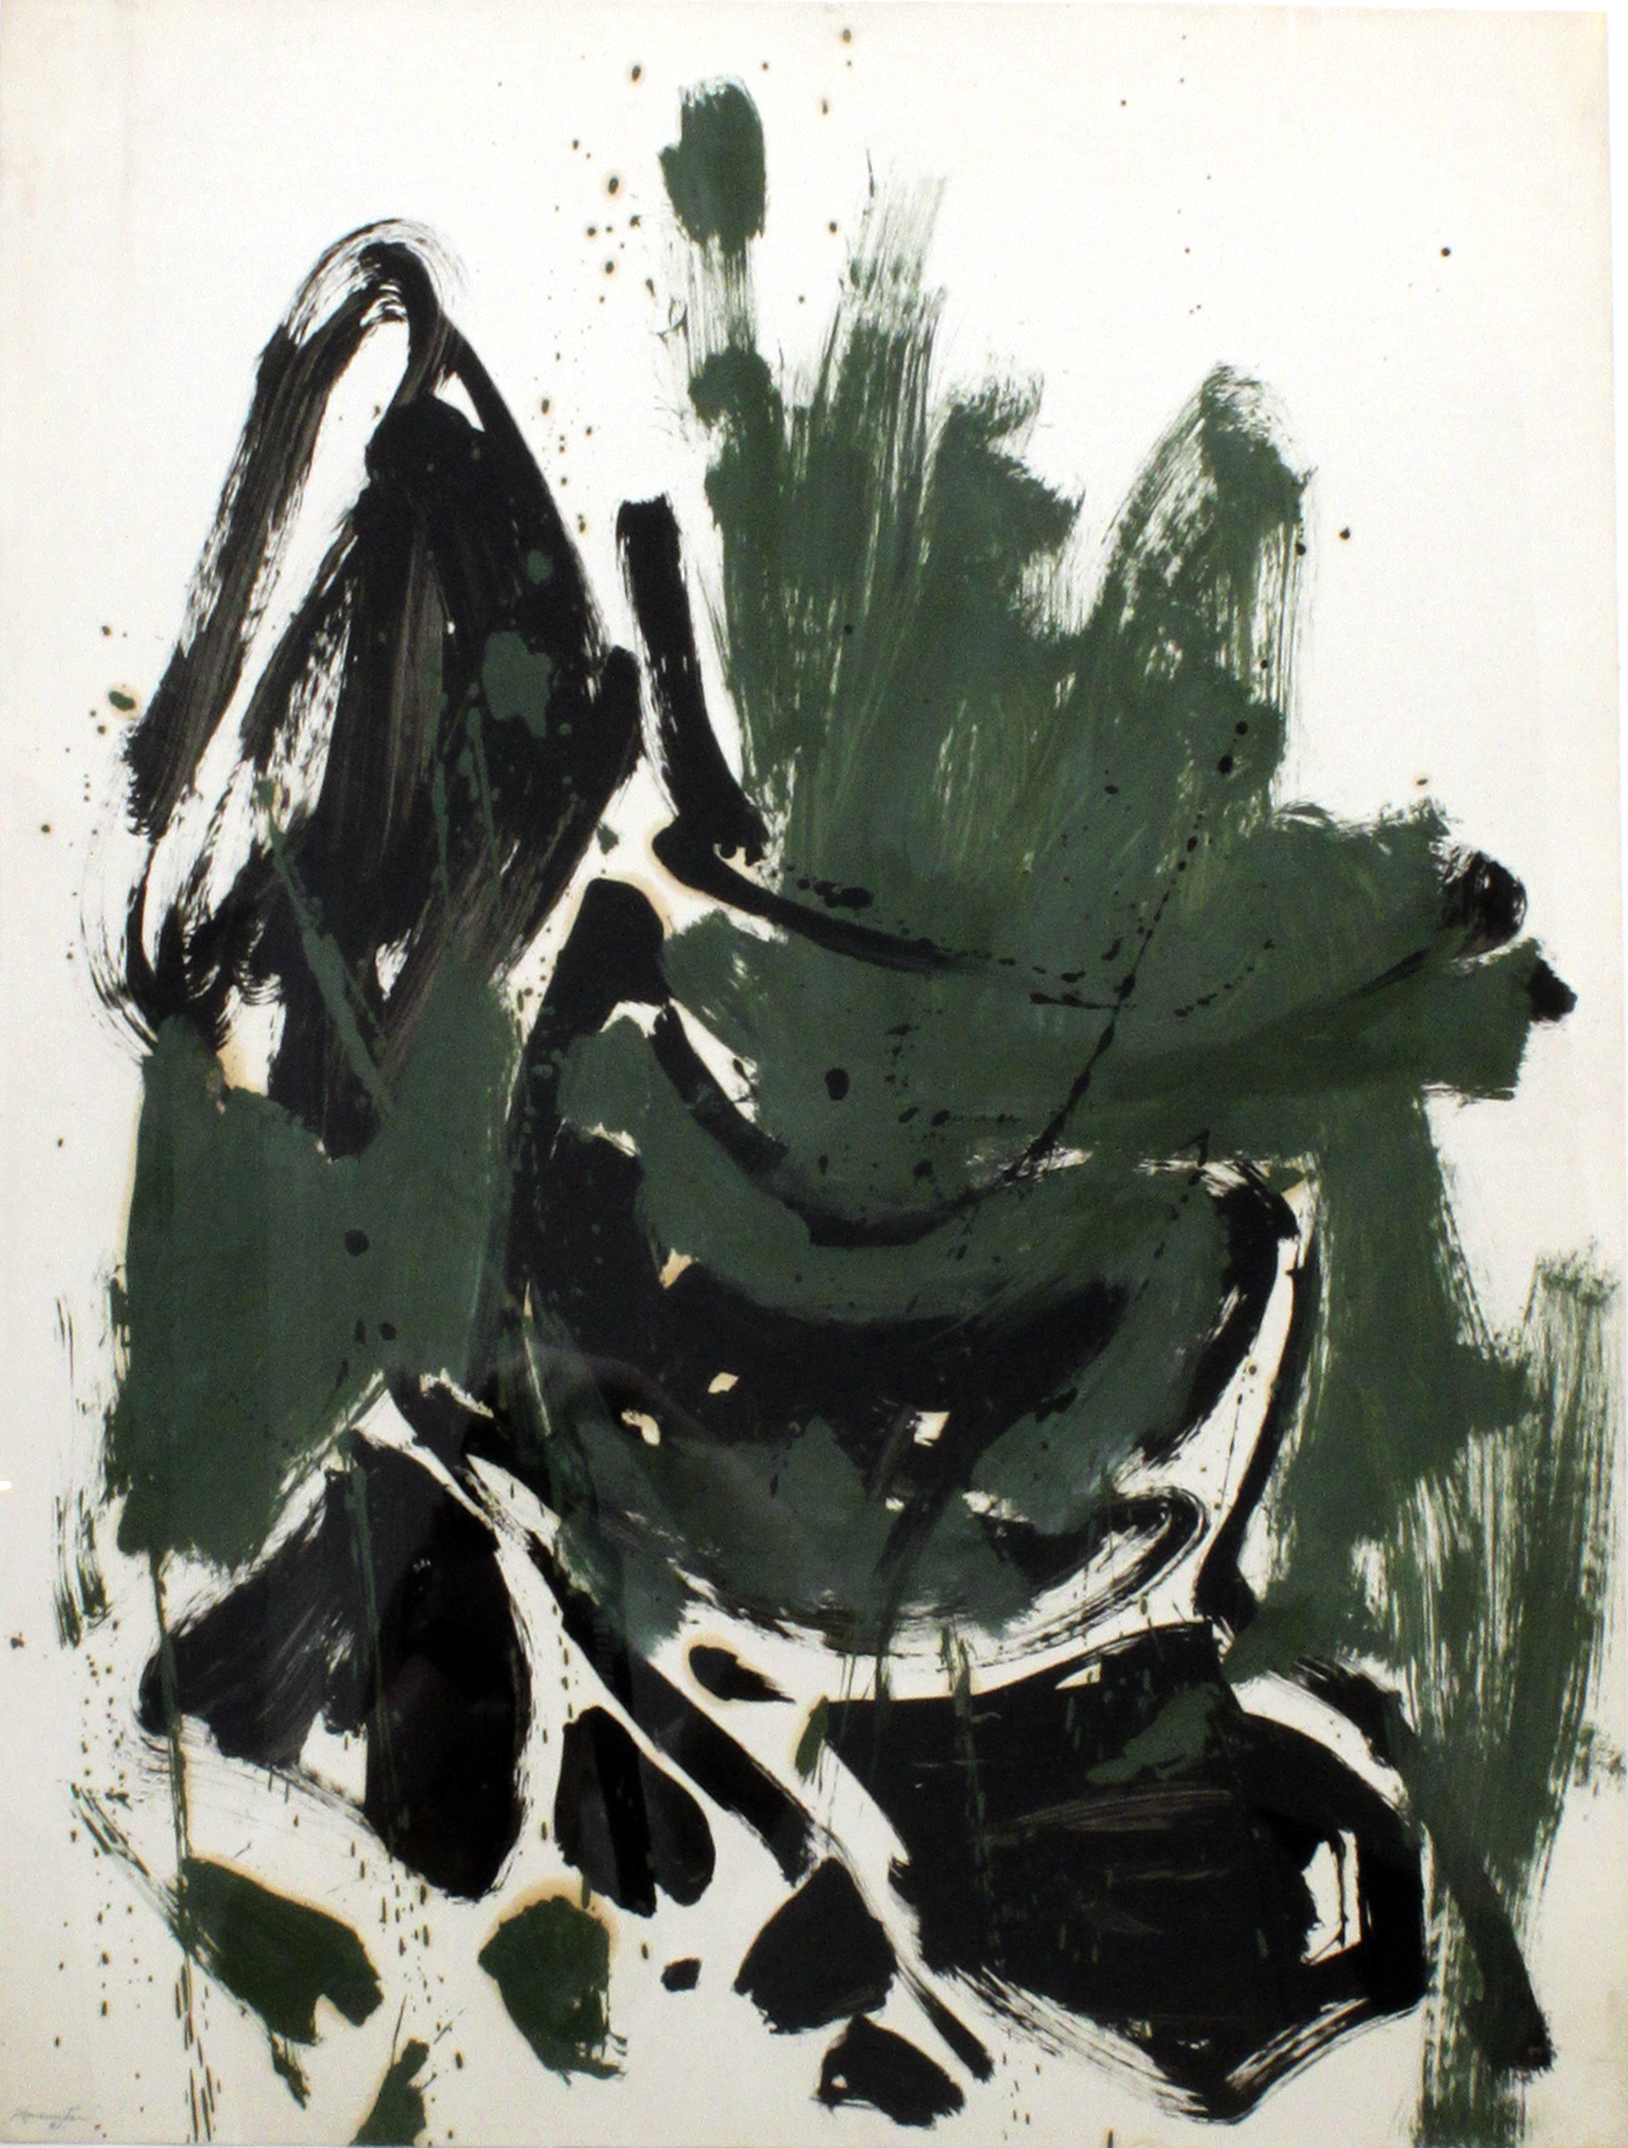 Abstraction (Green, Black, Brown) , 1961 oil on canvas 28.25 x 22.5 inches; 71.8 x 57.1 centimeters